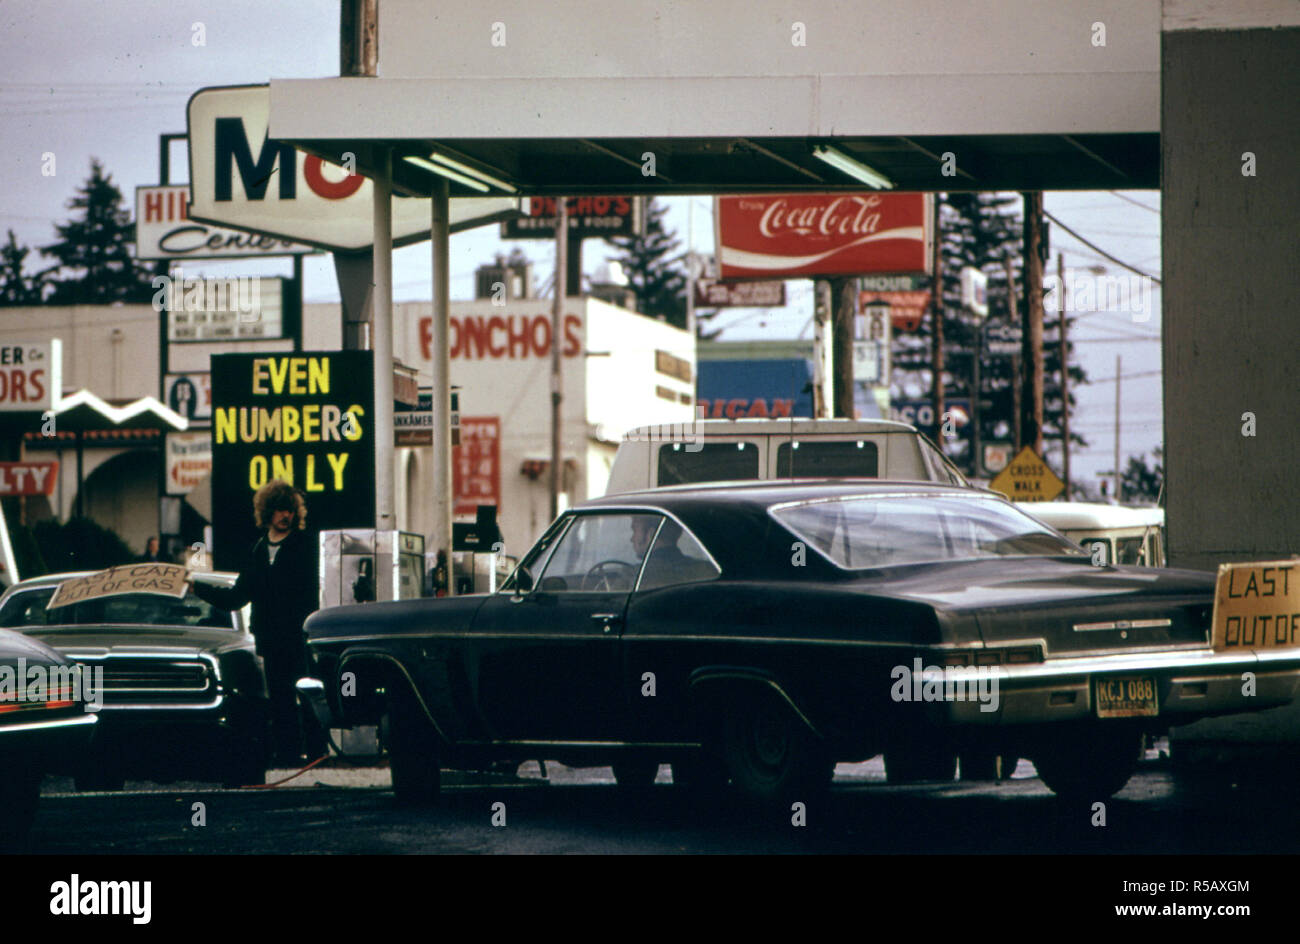 Portland 1974 - The State of Oregon Was the First to Go to a System of Odd and Even Numbers During the Gasoline Crisis in the Fall and Winter of 1973-74. - Stock Image